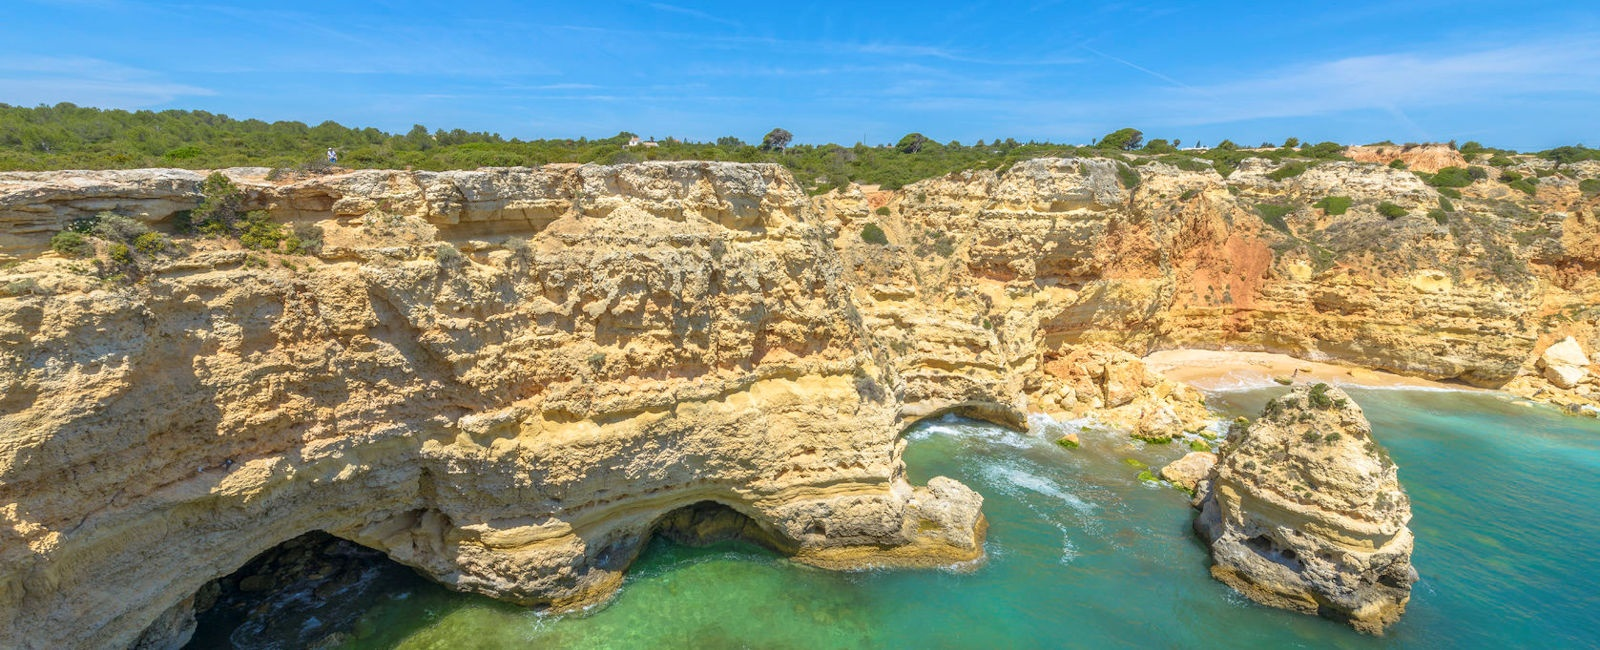 Hotel Tivoli Carvoeiro Algarve Booking Luxury Algarve Holidays 2019 20 Classic Collection Holidays